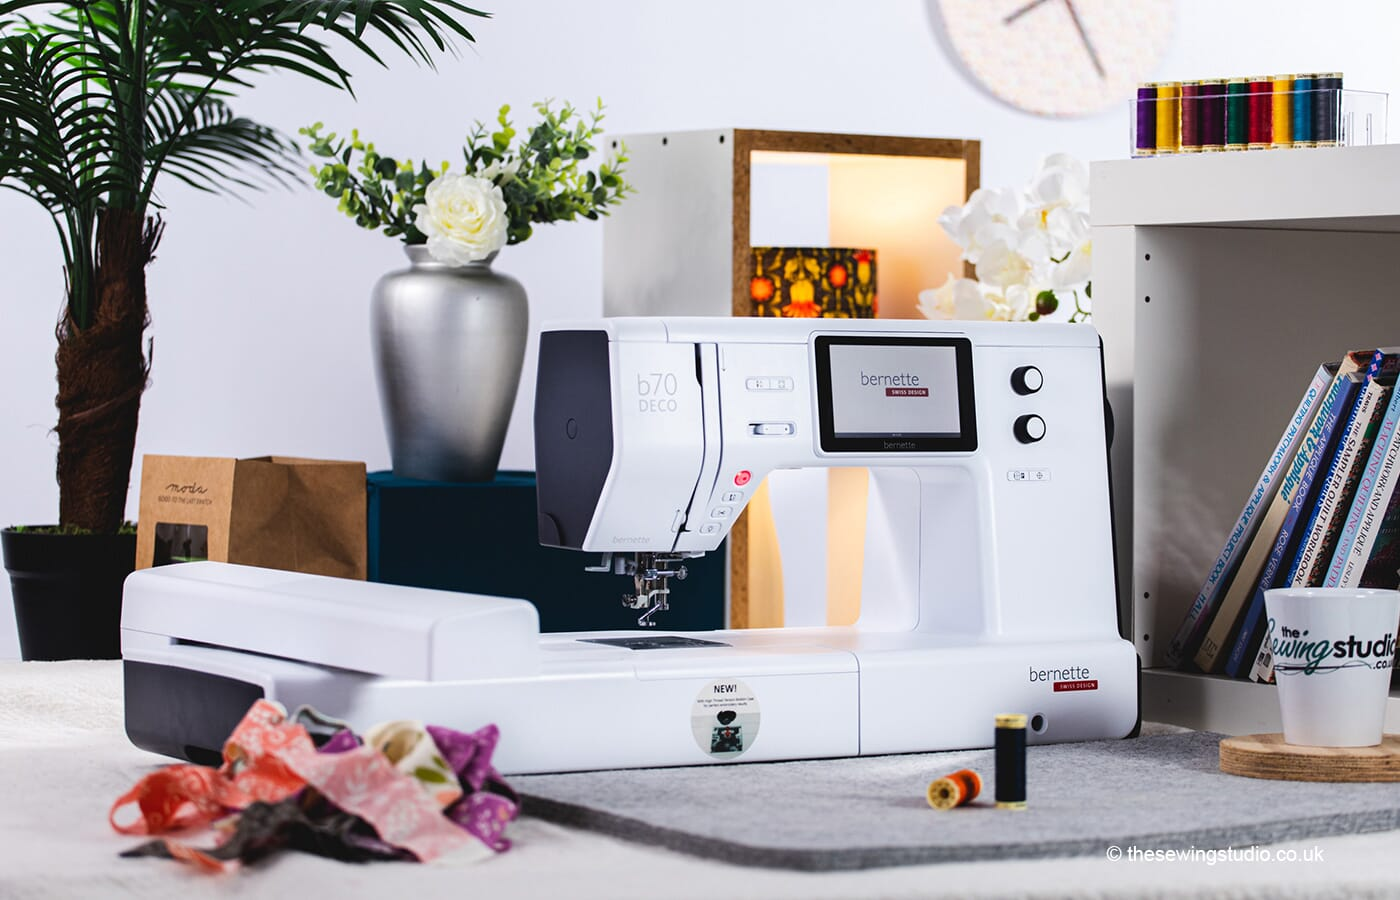 Bernette B70 DECO Embroidery Machine in a Sewing Room